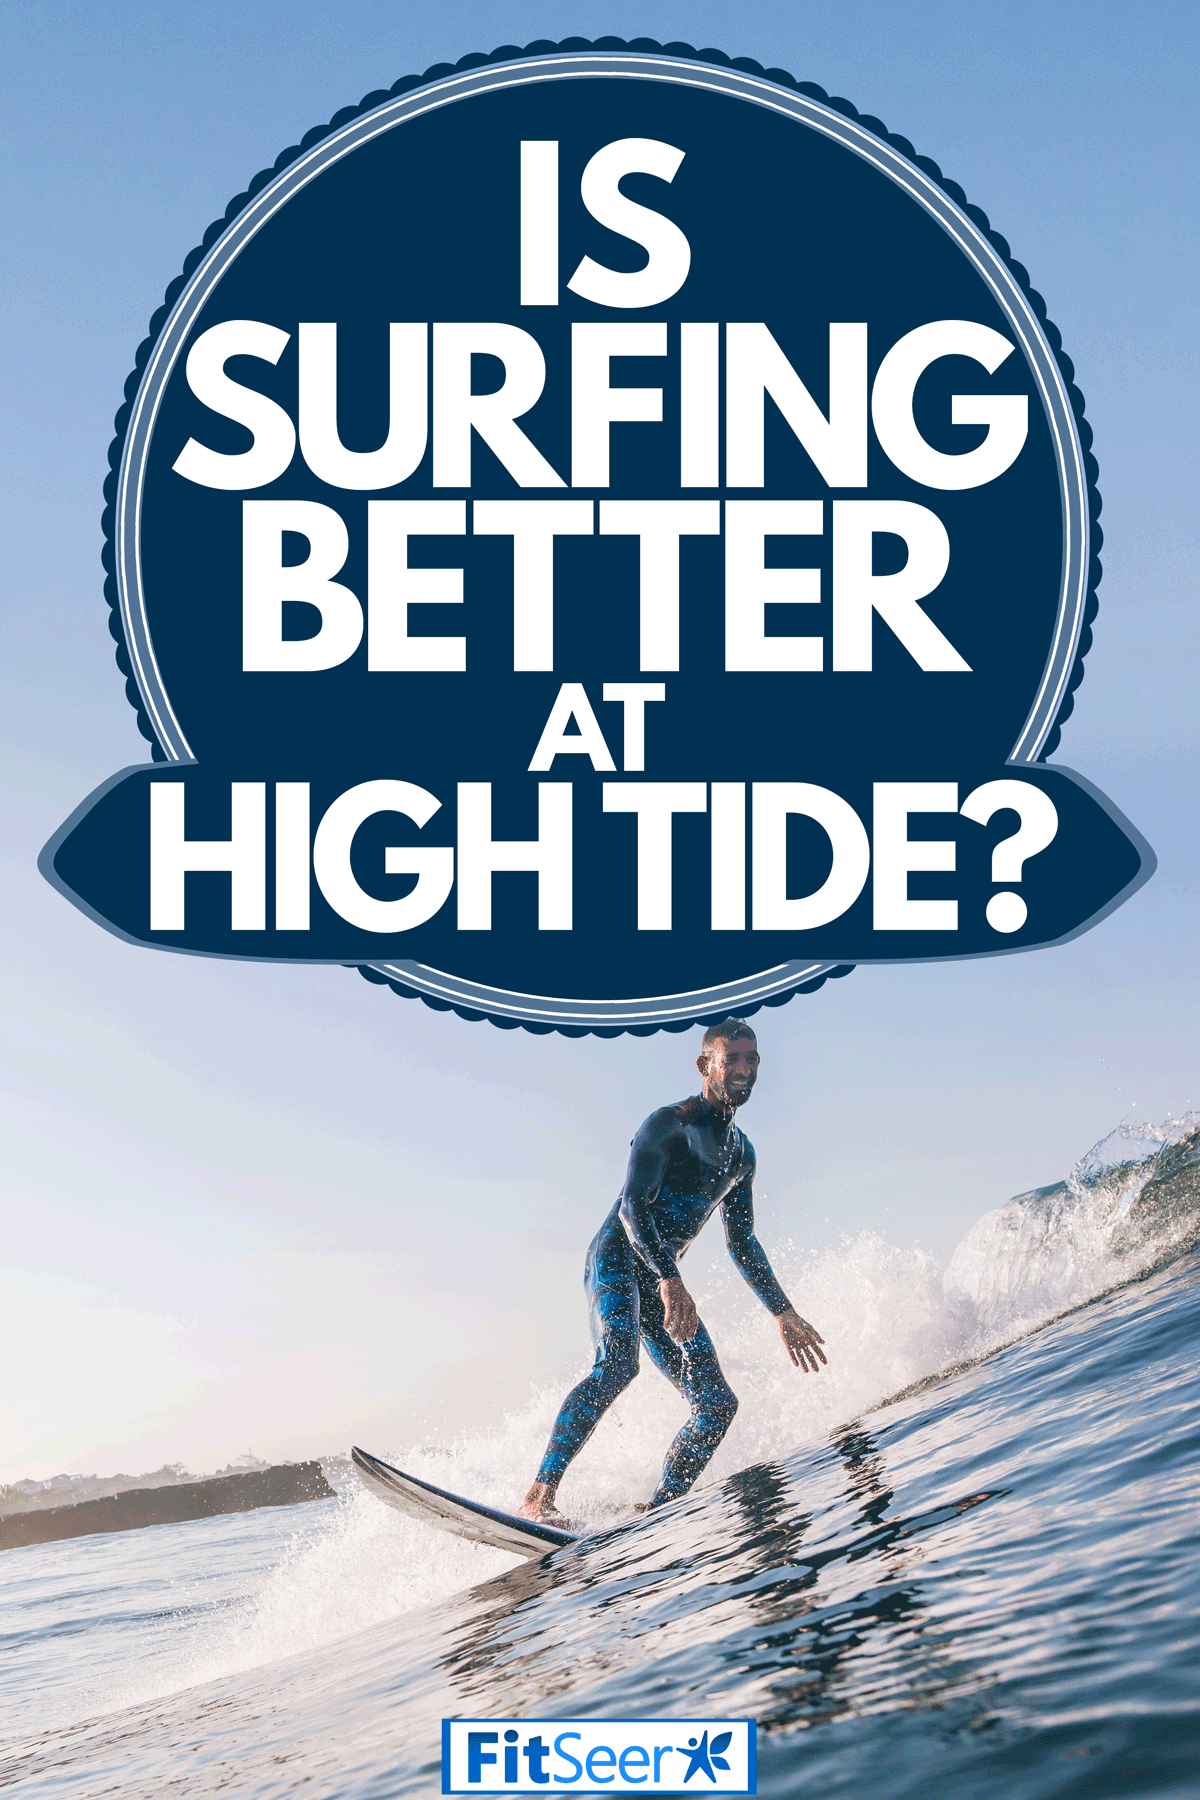 A young surfer riding a small wave on a bay, Is Surfing Better At High Tide?